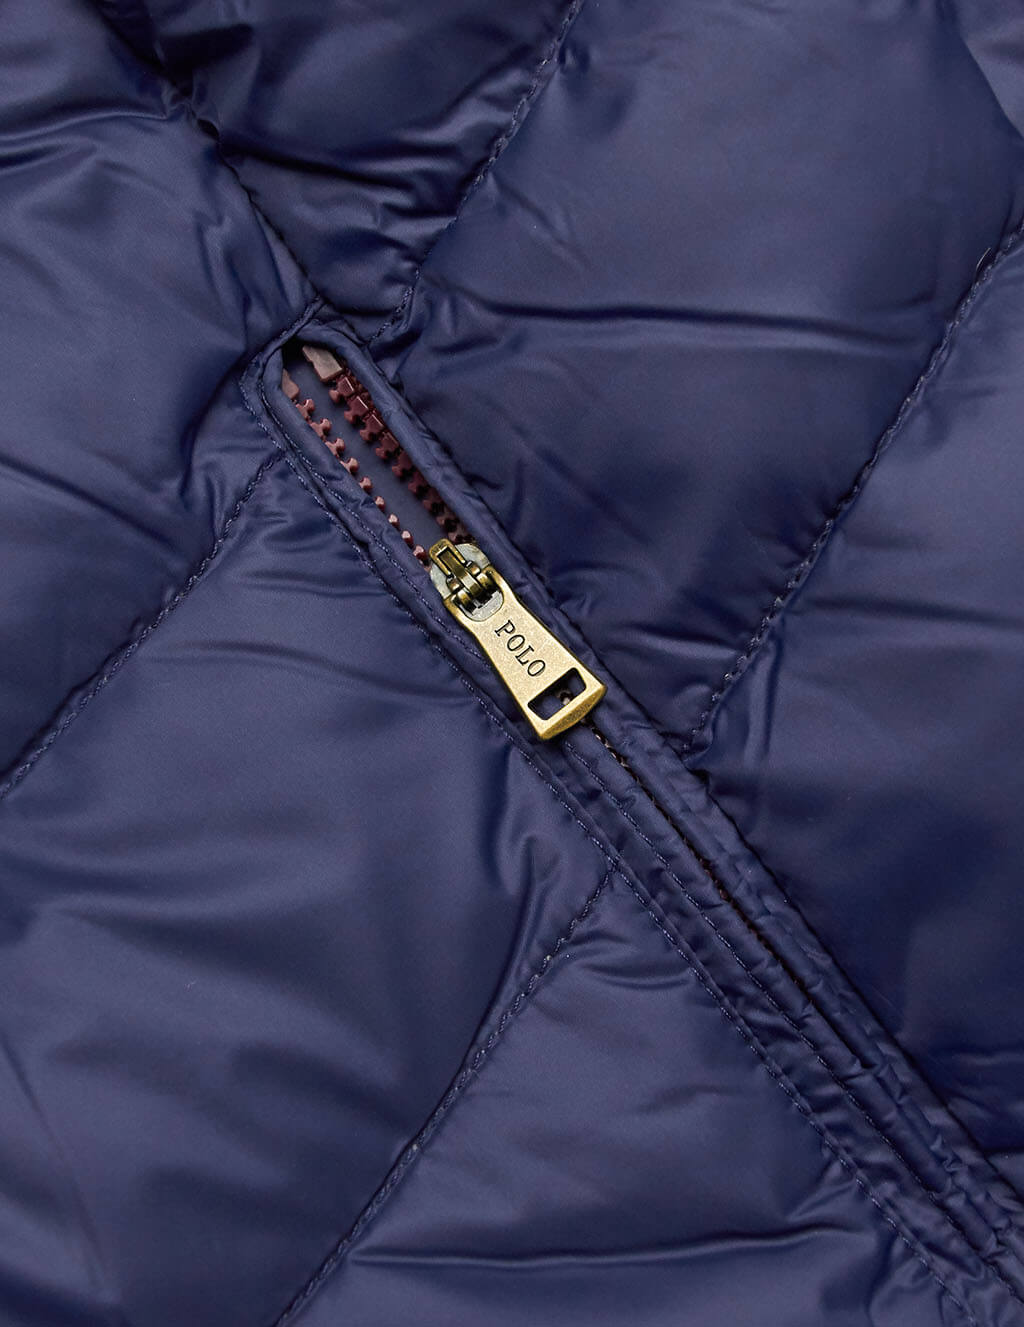 86713ce78 Polo Ralph Lauren Packable Quilted Down Jacket | GIULIOFASHION.COM ...